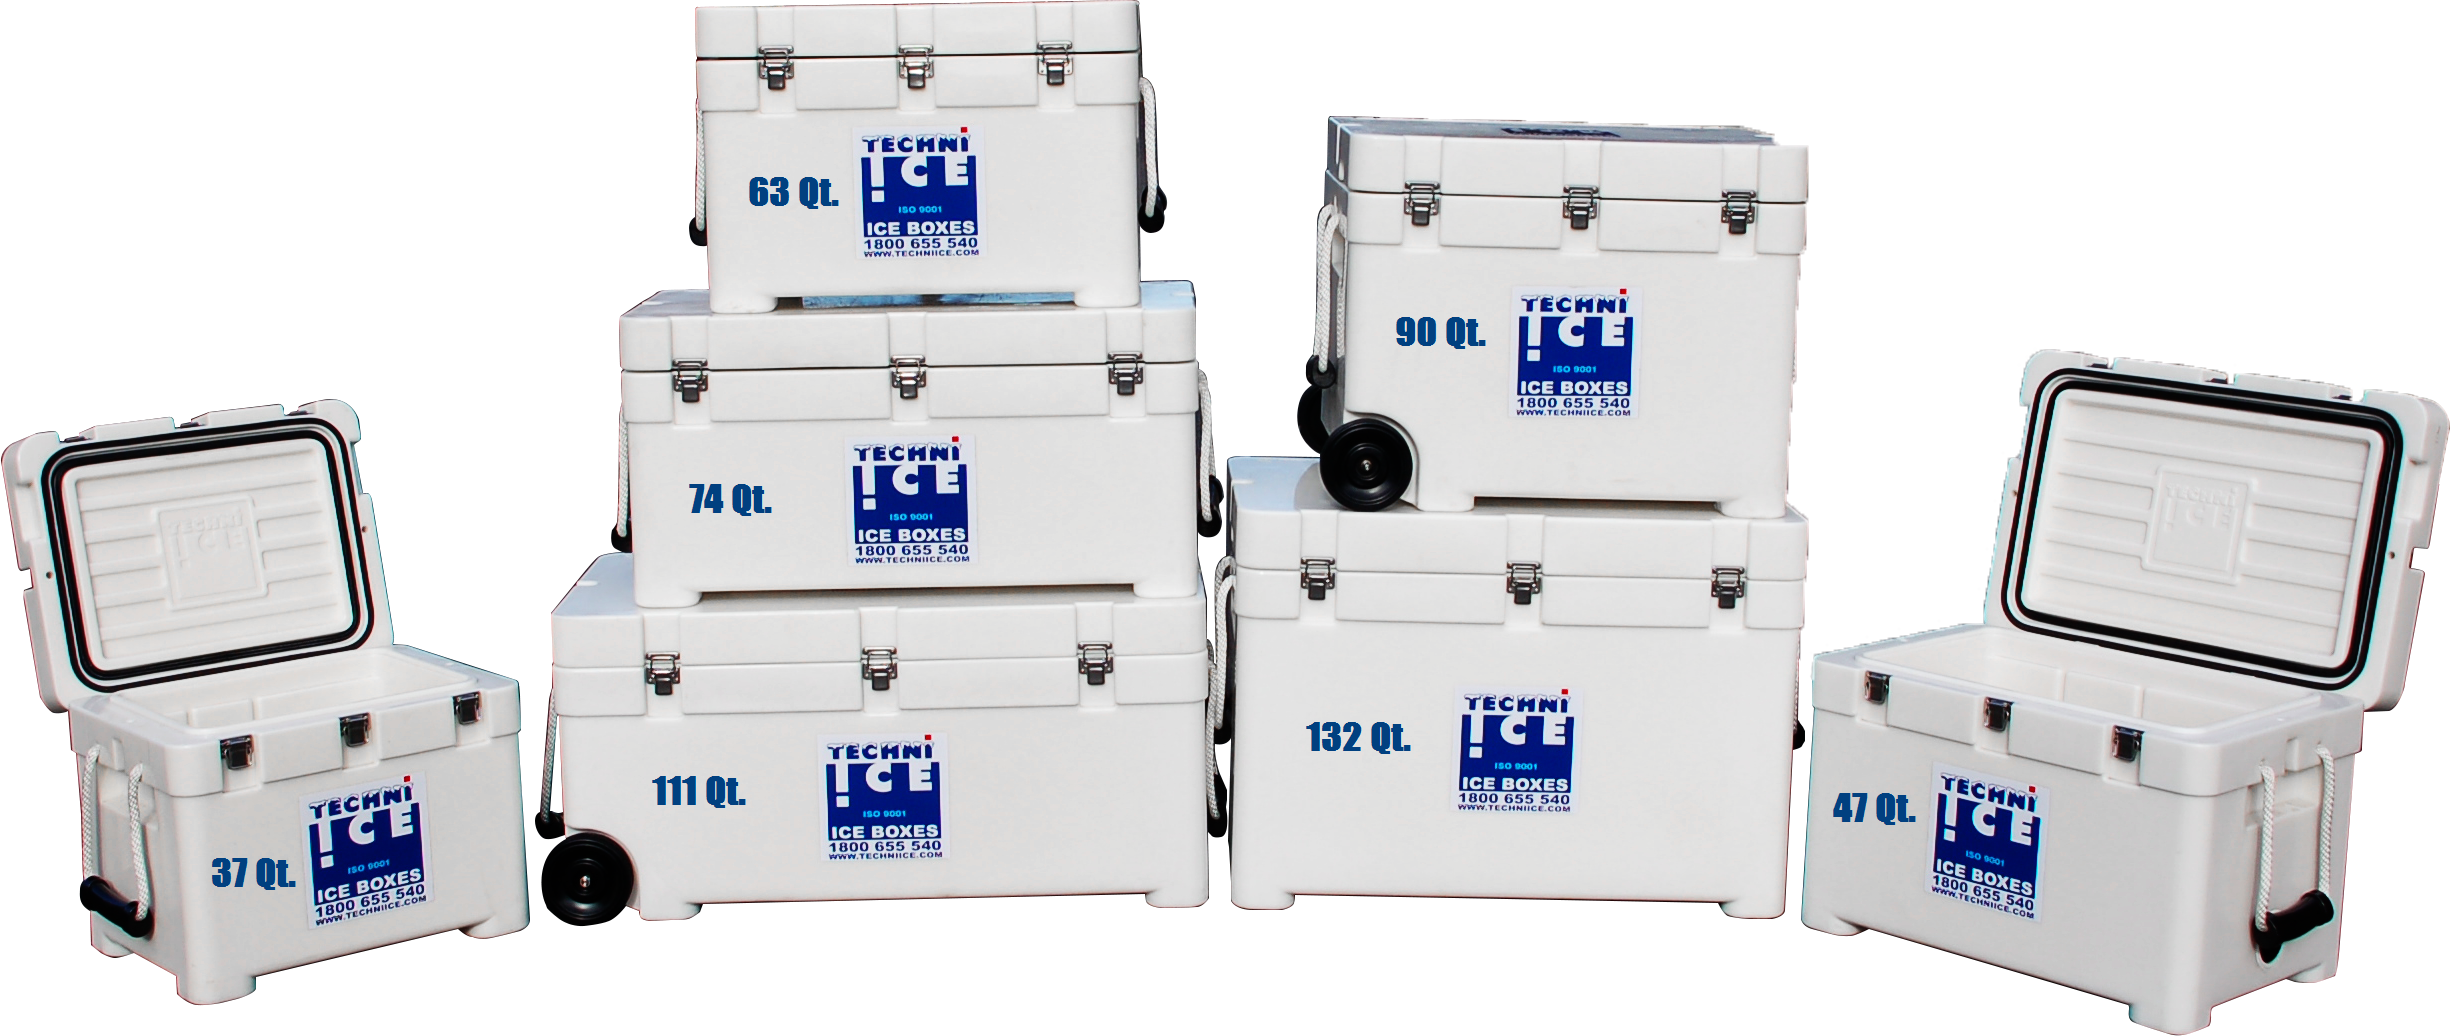 techniice premium cooler ice chest series